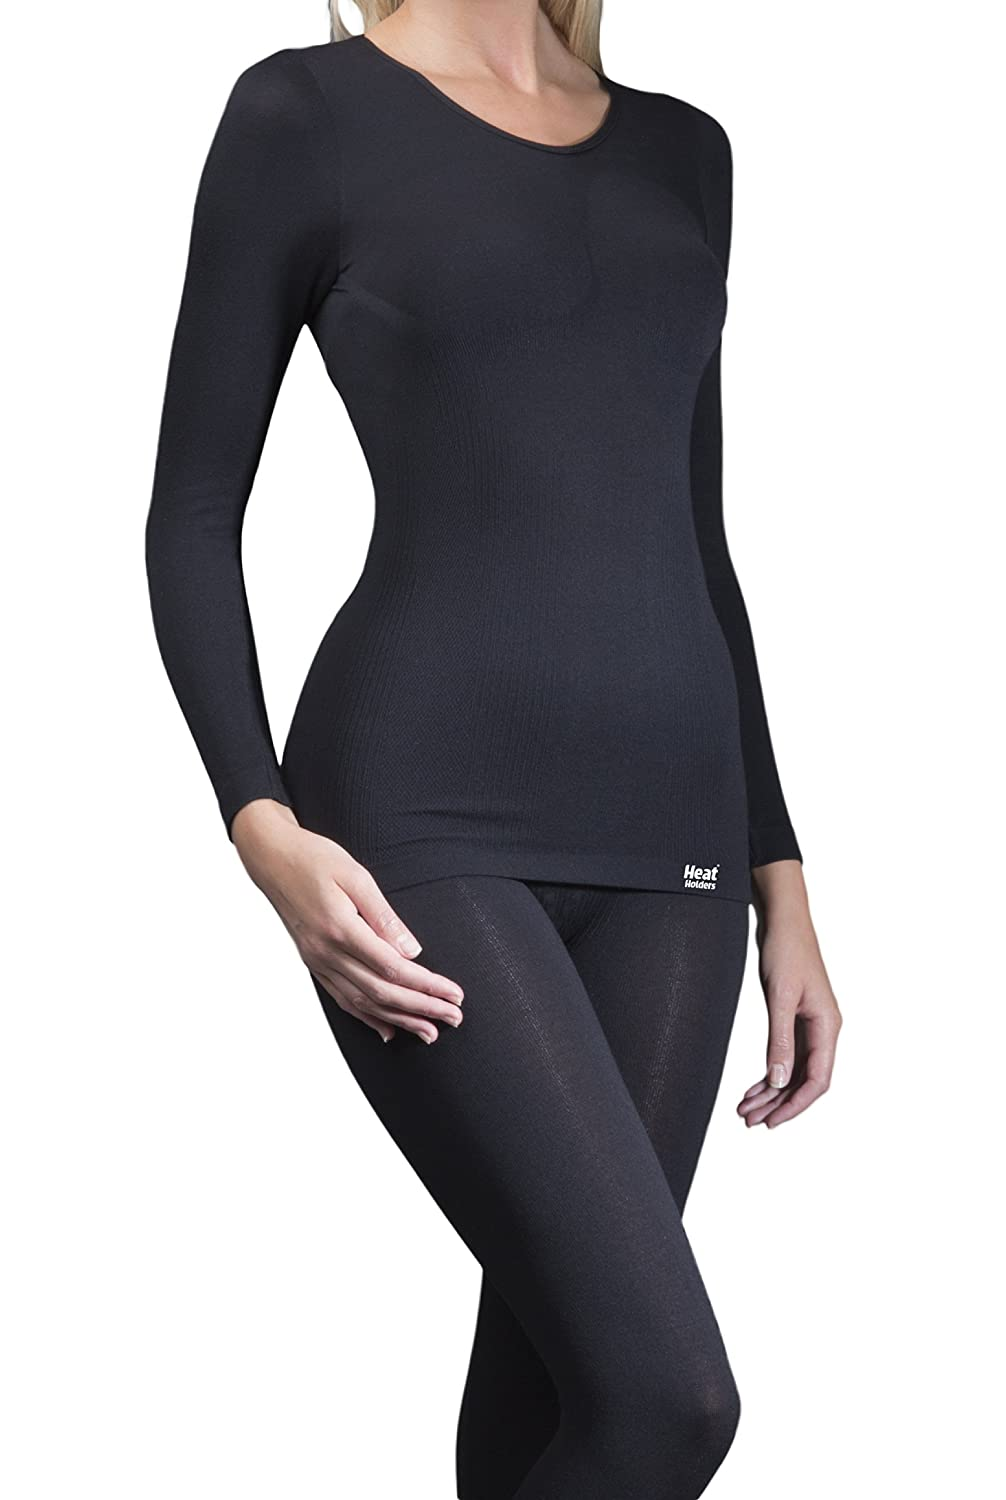 1 No. Ladies GENUINE Original Thermal Tog Heat Holders Long Sleeve Vest - BLACK available in S/M & L/XL